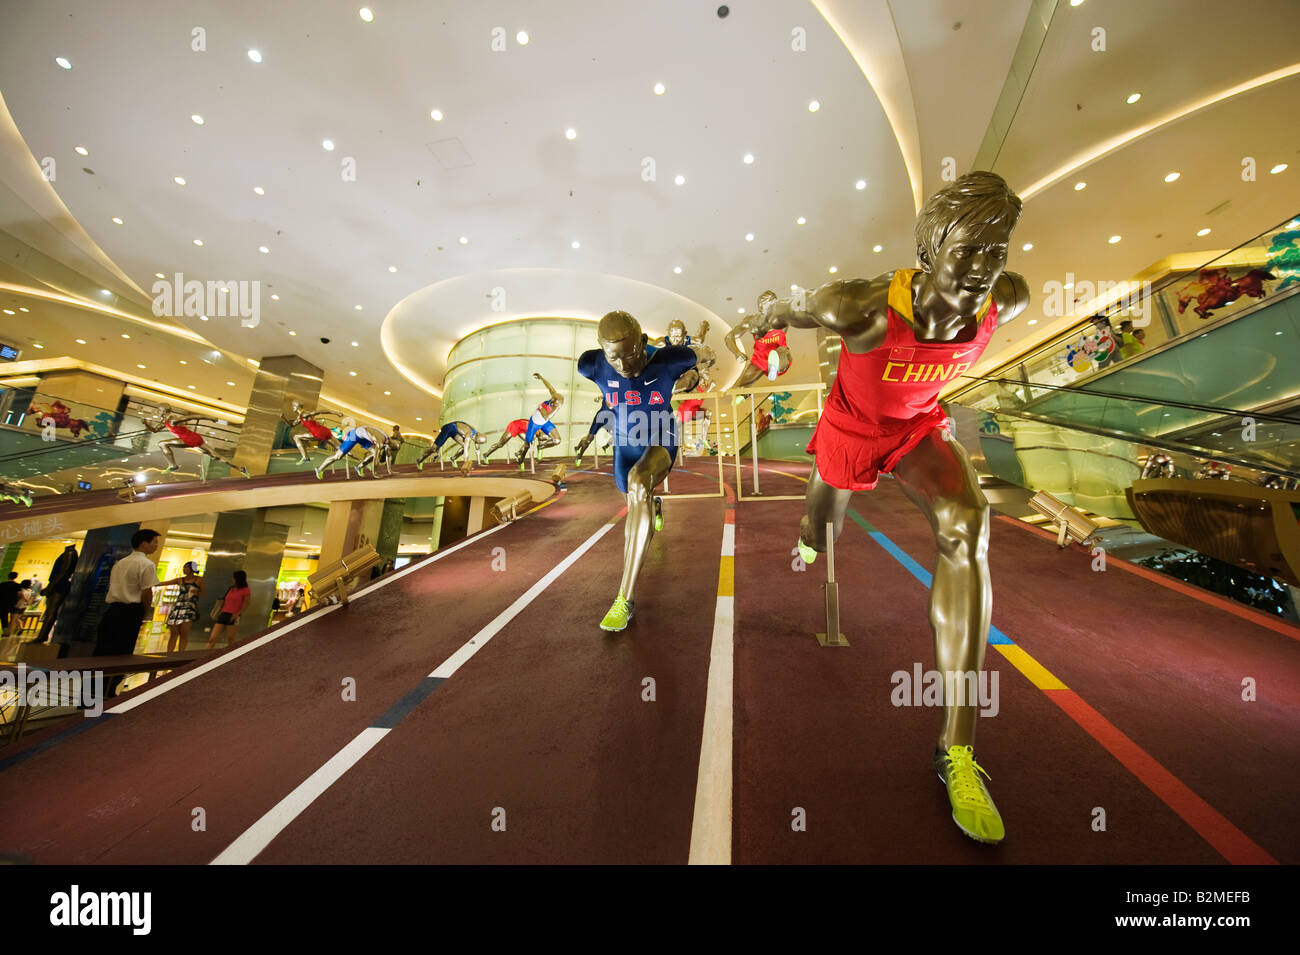 China Beijing Wangfujing Olympic sporting display Stock Photo